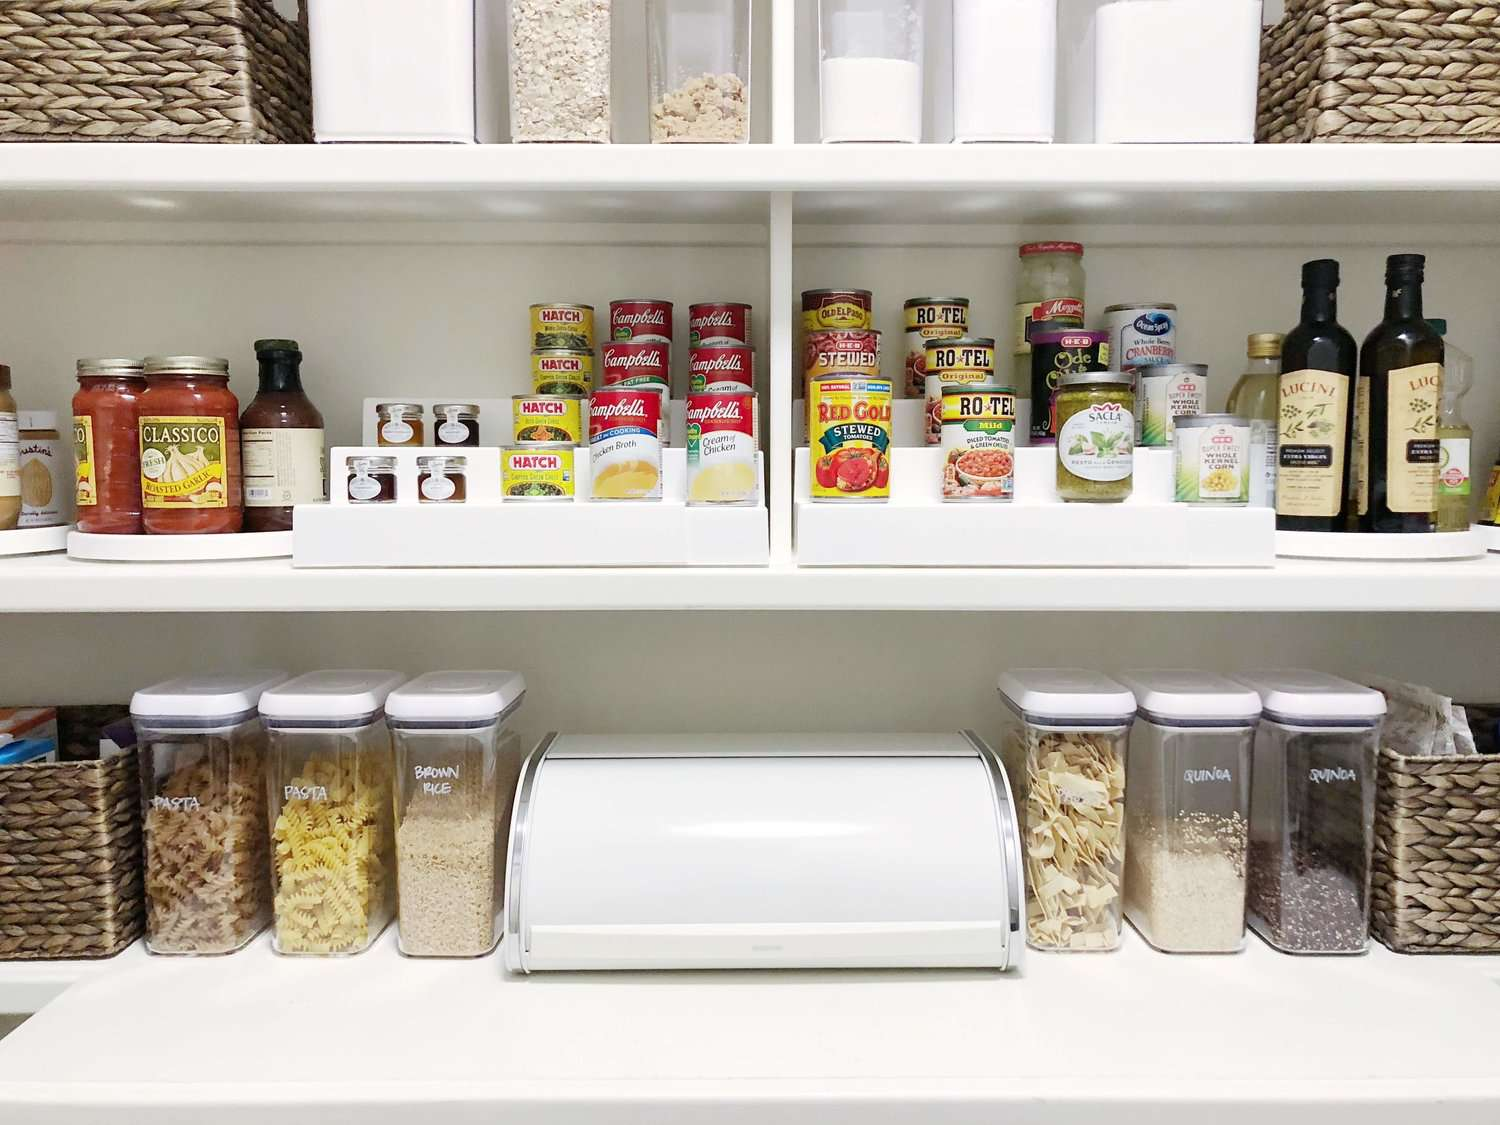 Organized pantry with containers holding cereal and pasta.